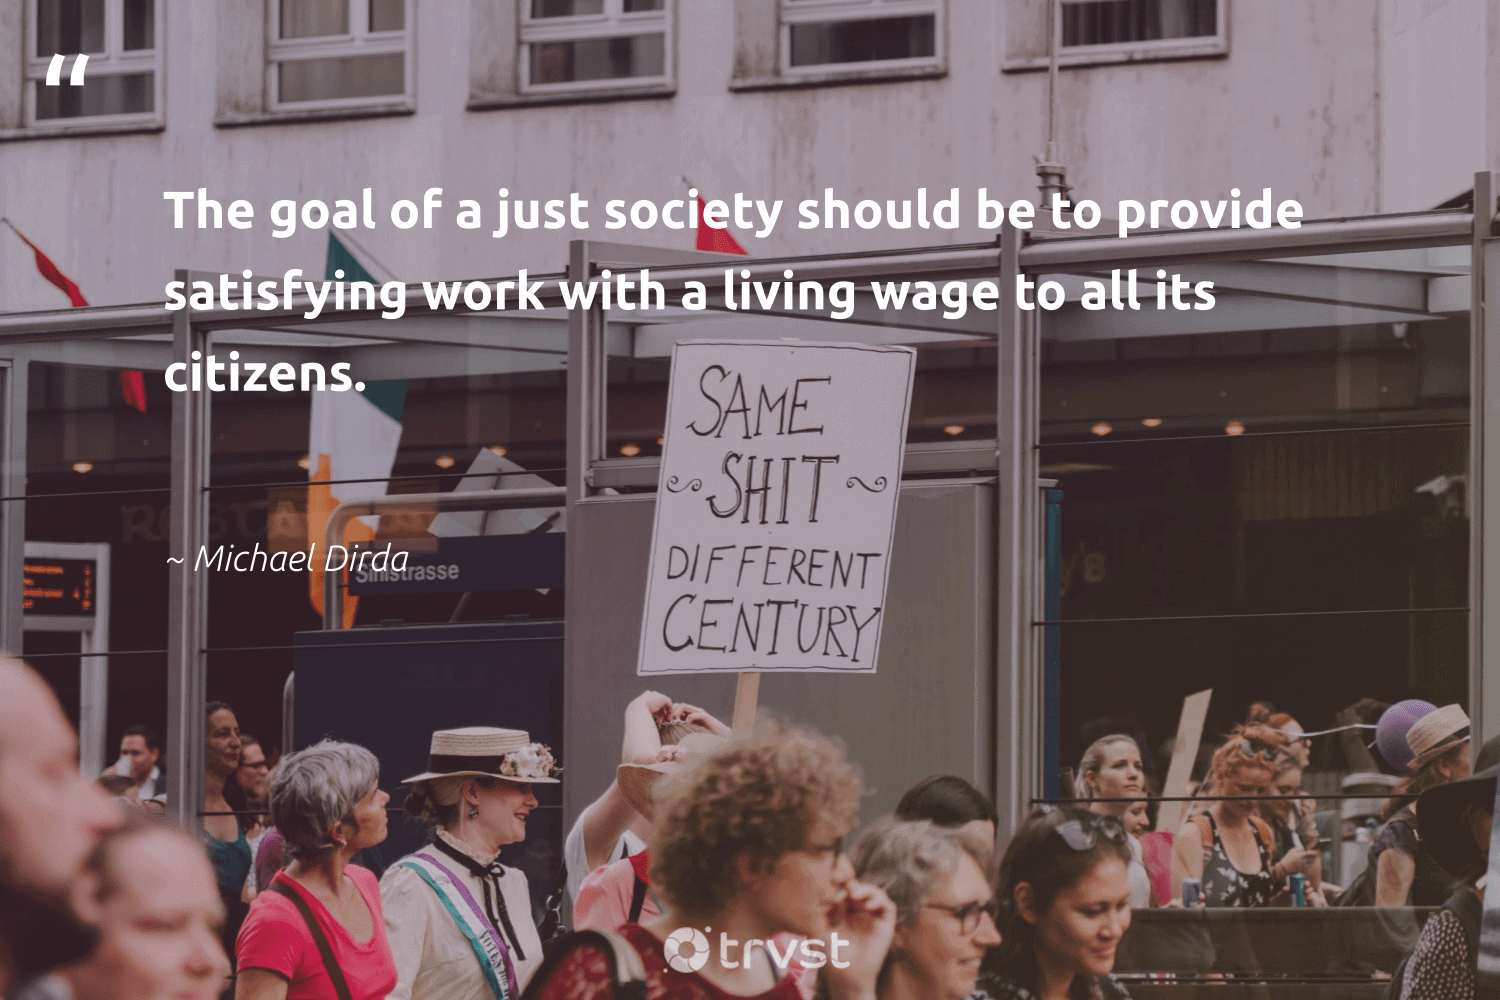 """""""The goal of a just society should be to provide satisfying work with a living wage to all its citizens.""""  - Michael Dirda #trvst #quotes #society #weareallone #collectiveaction #makeadifference #takeaction #socialchange #bethechange #socialgood #thinkgreen #giveback"""